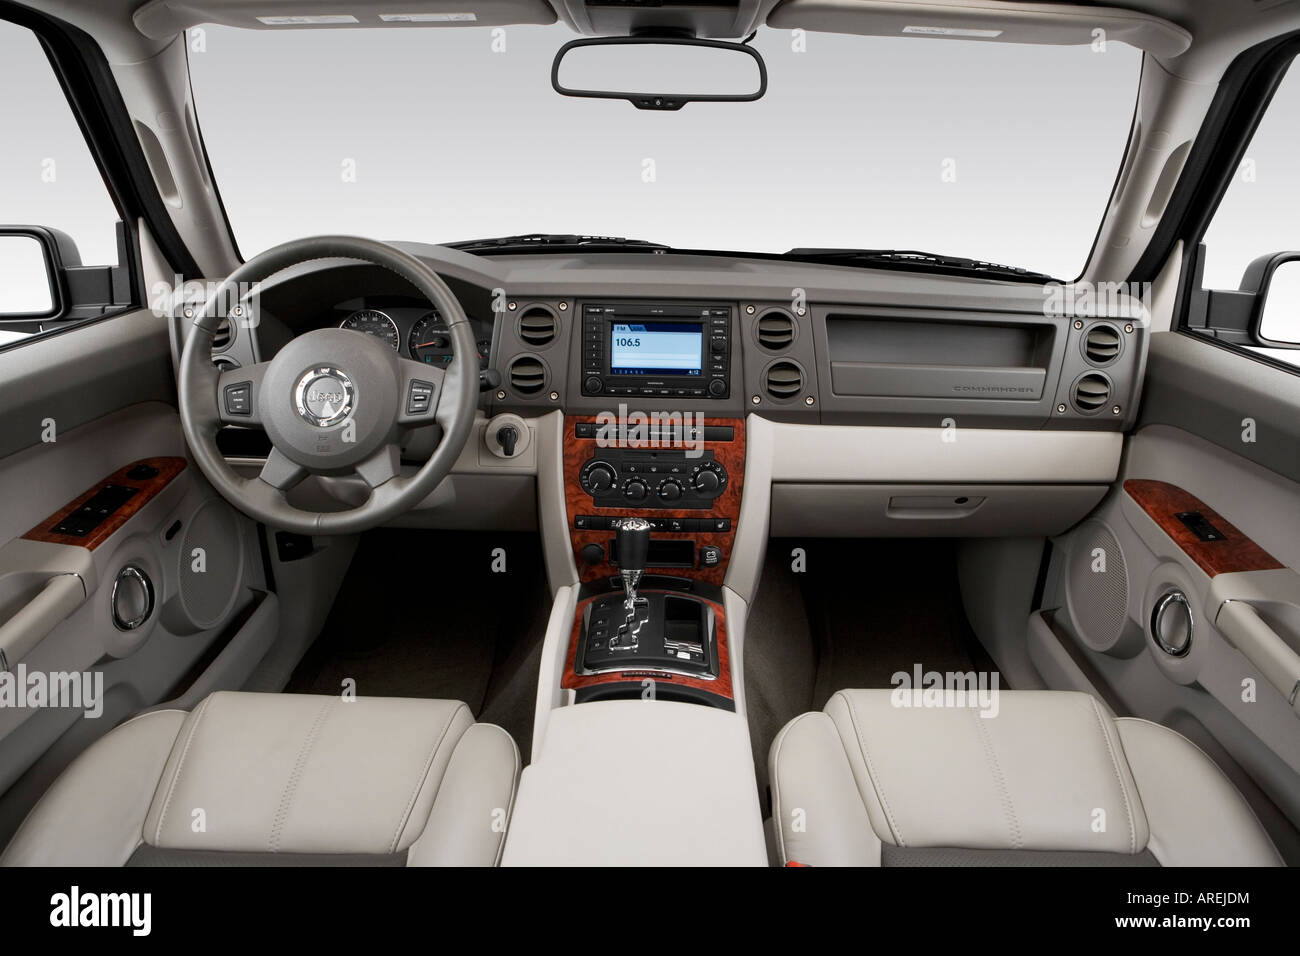 2006 Jeep Commander Limited in Beige - Dashboard, center console